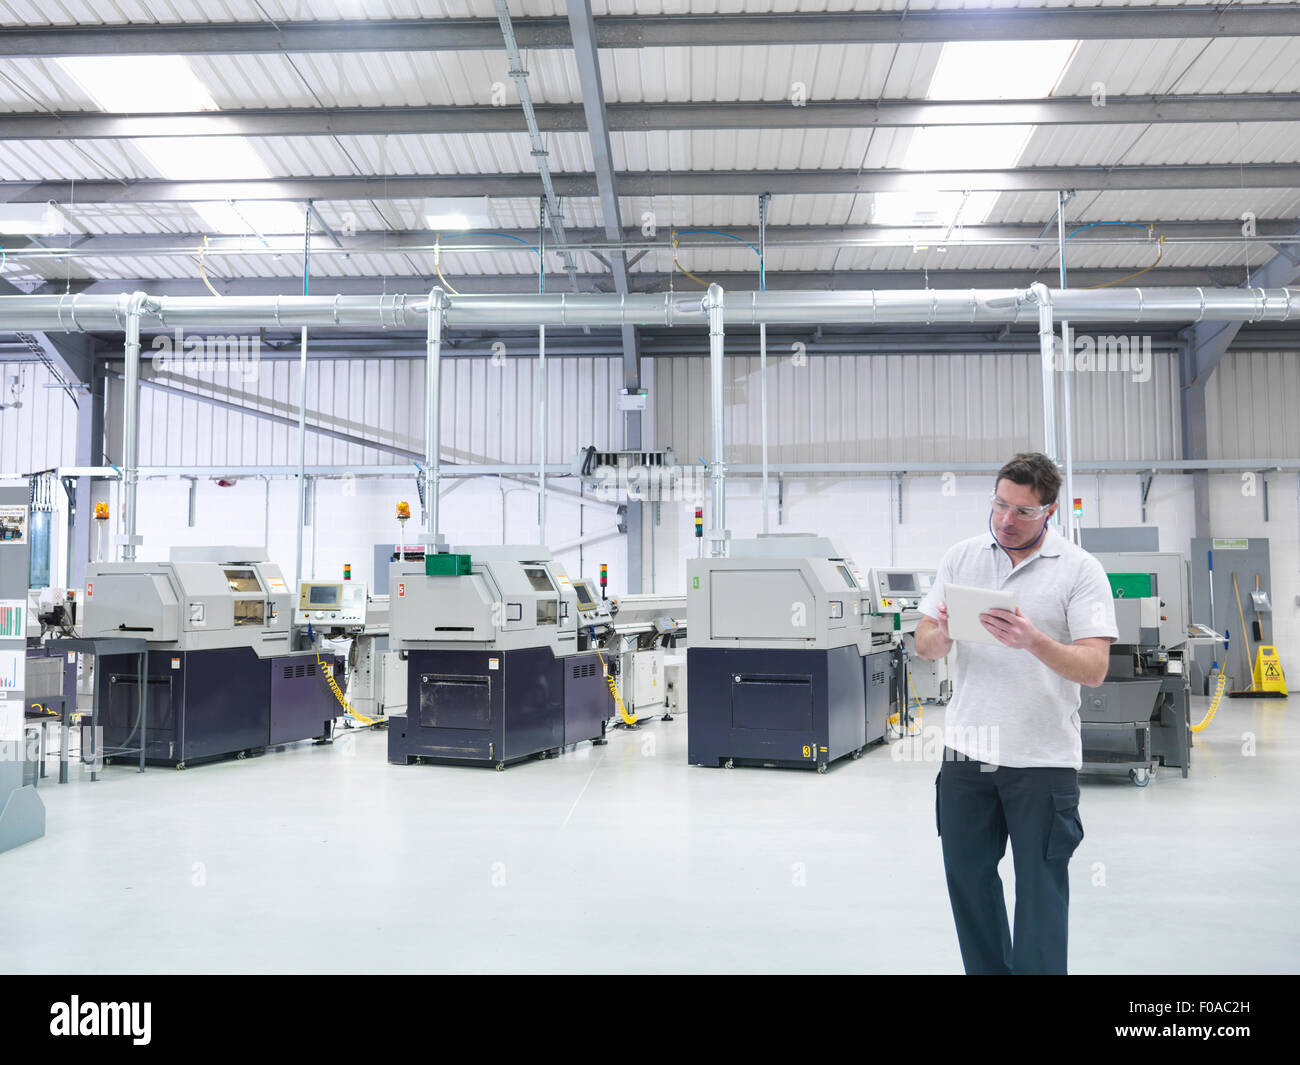 Engineer using digital tablet by production line in factory - Stock Image